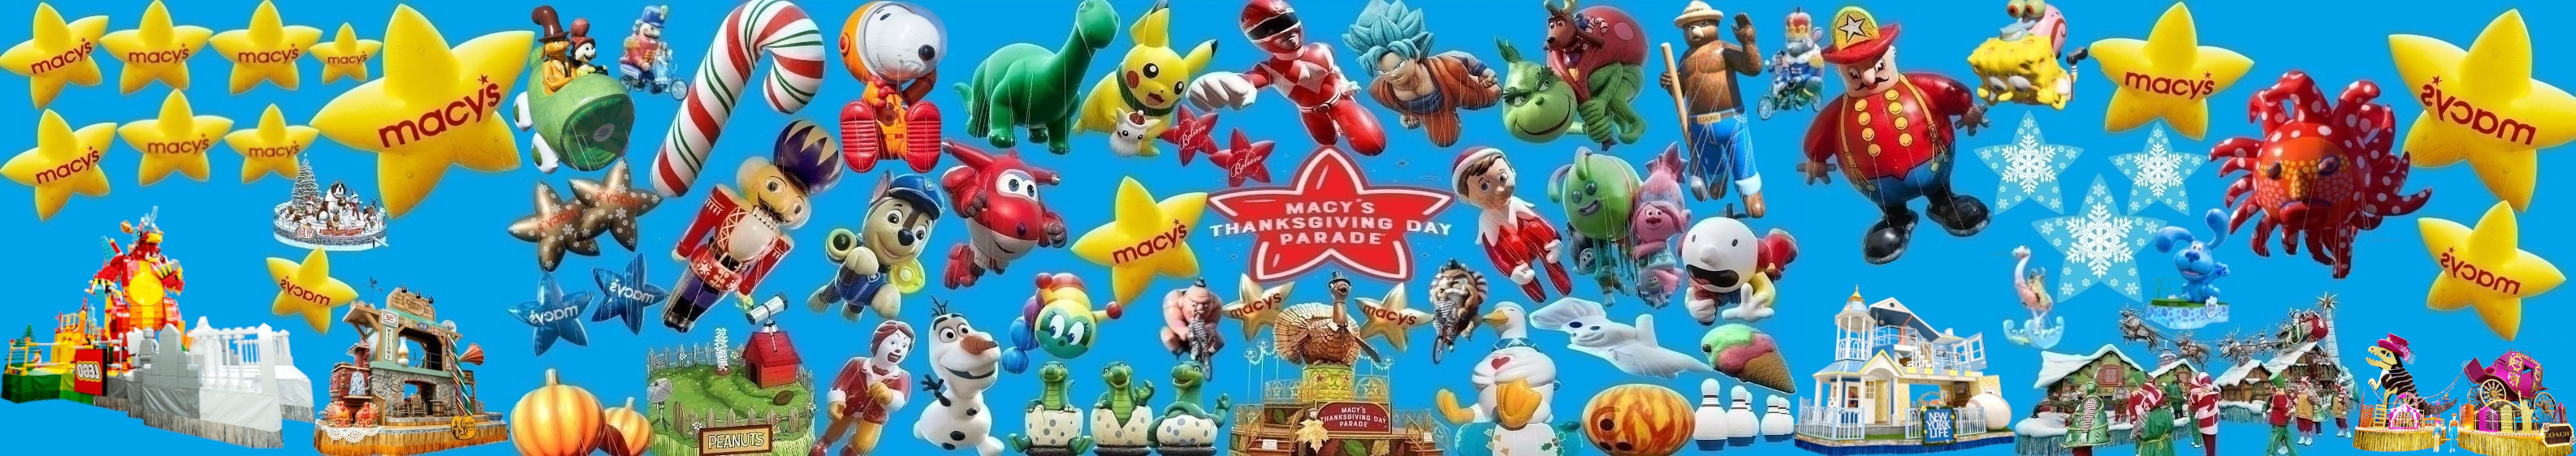 Apple idk/Fanmade Macy's parade banners I made